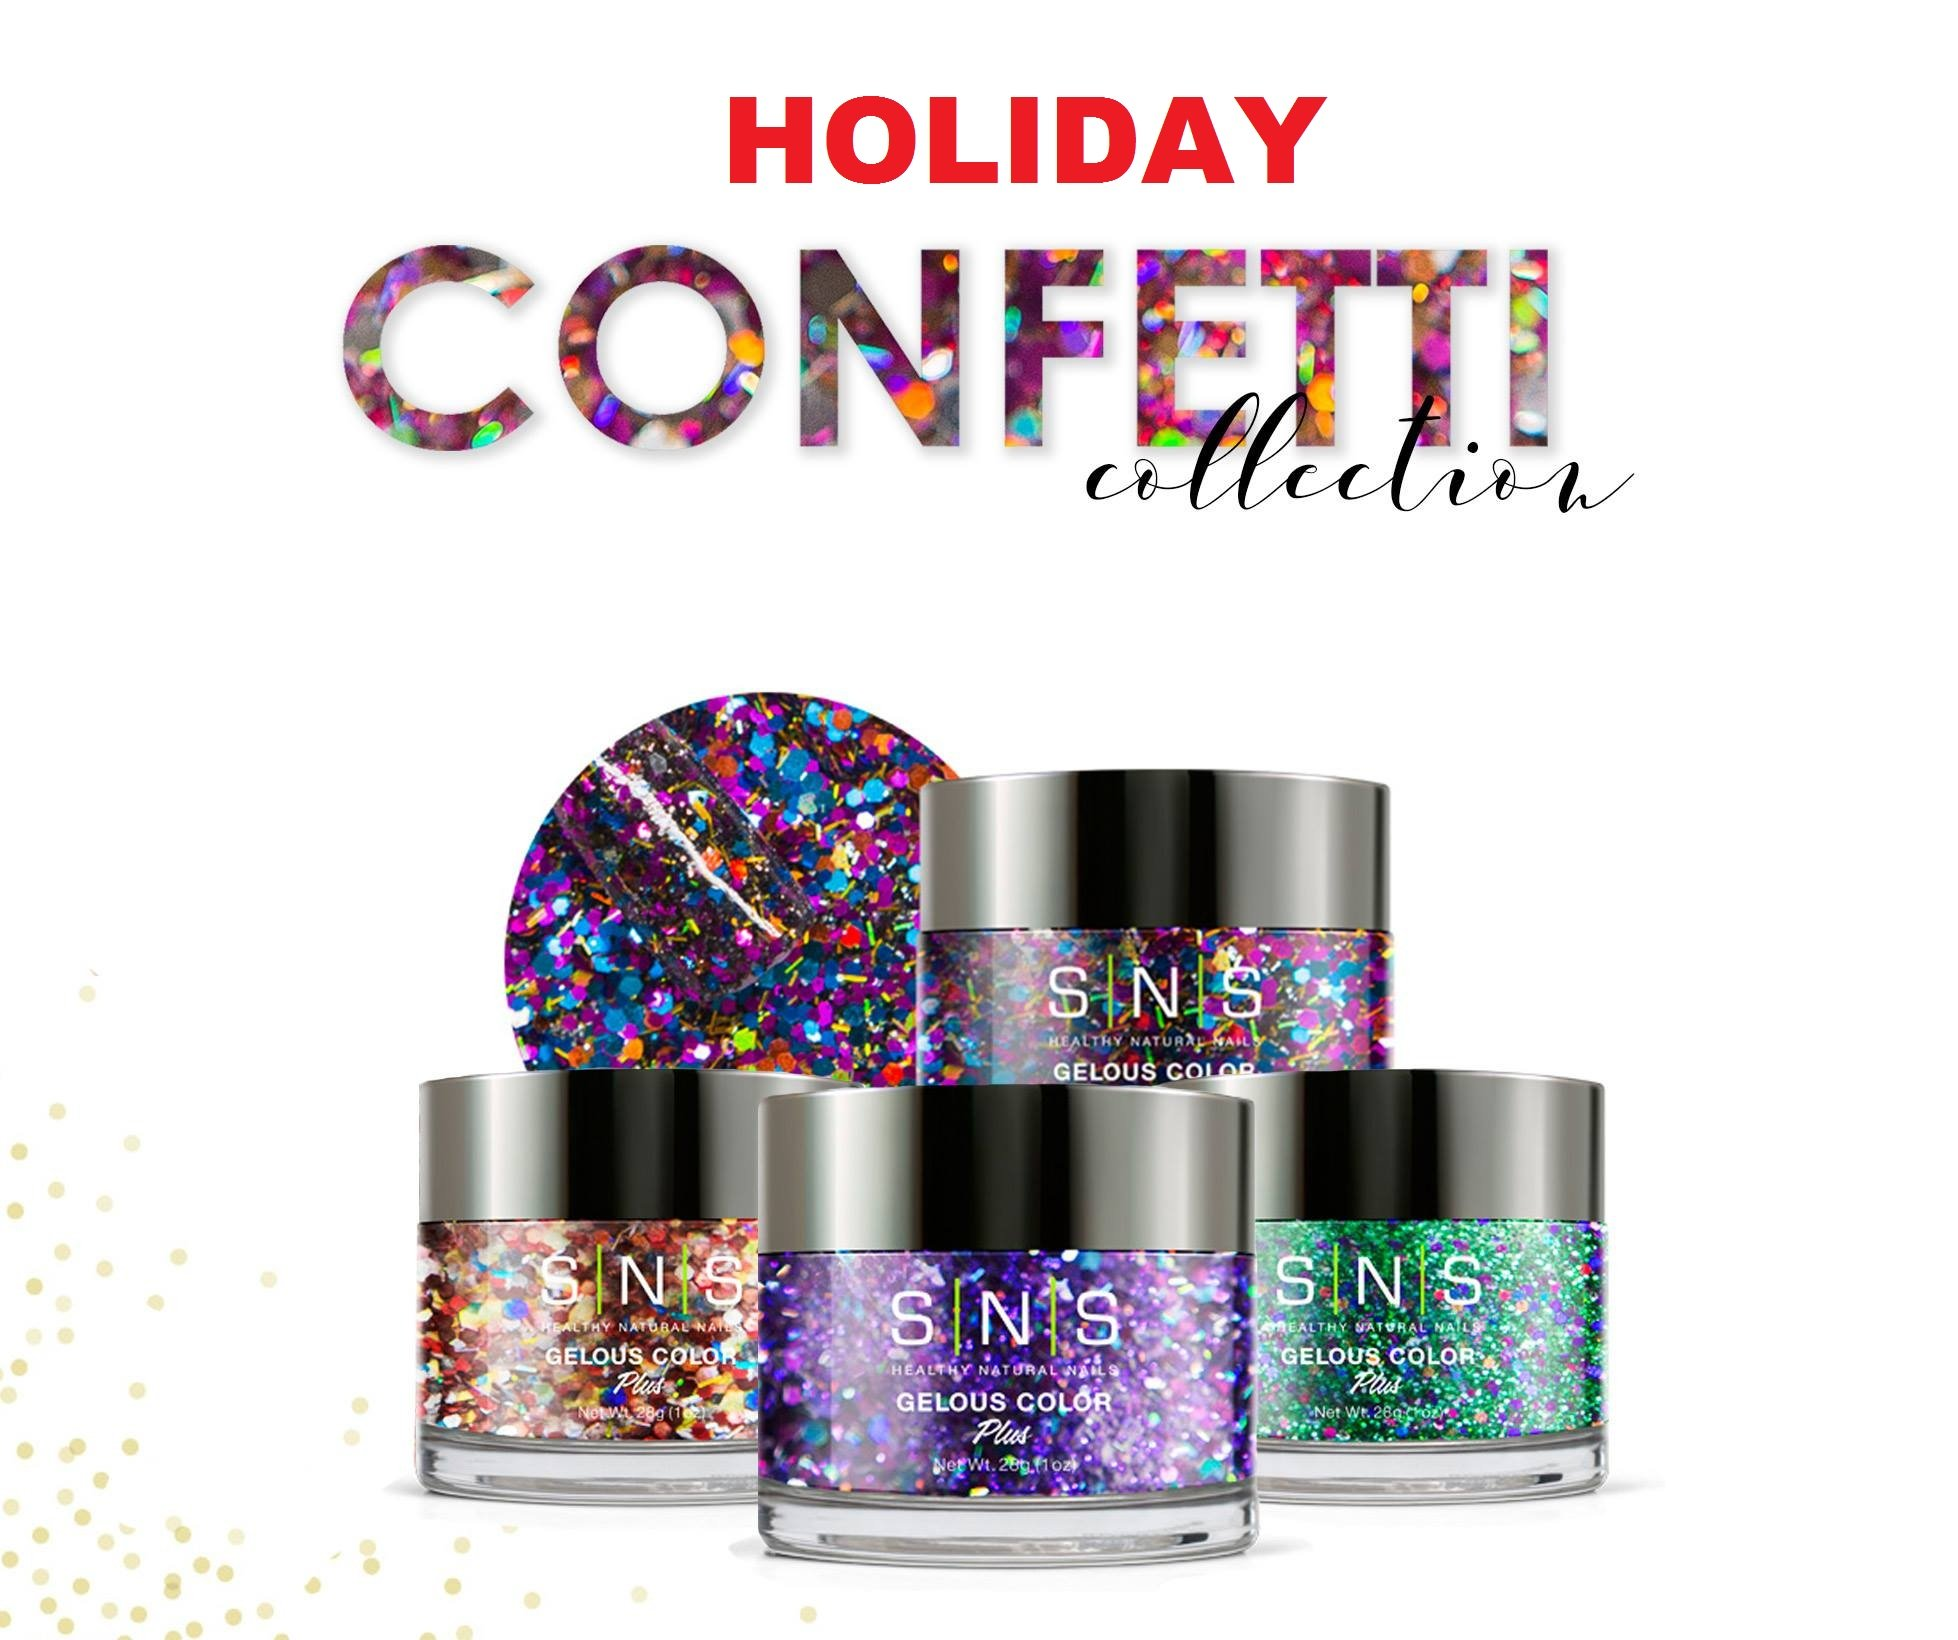 SNS Nail Dipping Powder Gelous Color Kits - Holiday Collection 1 - FREE Mina Dip Gel Base, Gel Top and Activator by SNS (Image #1)